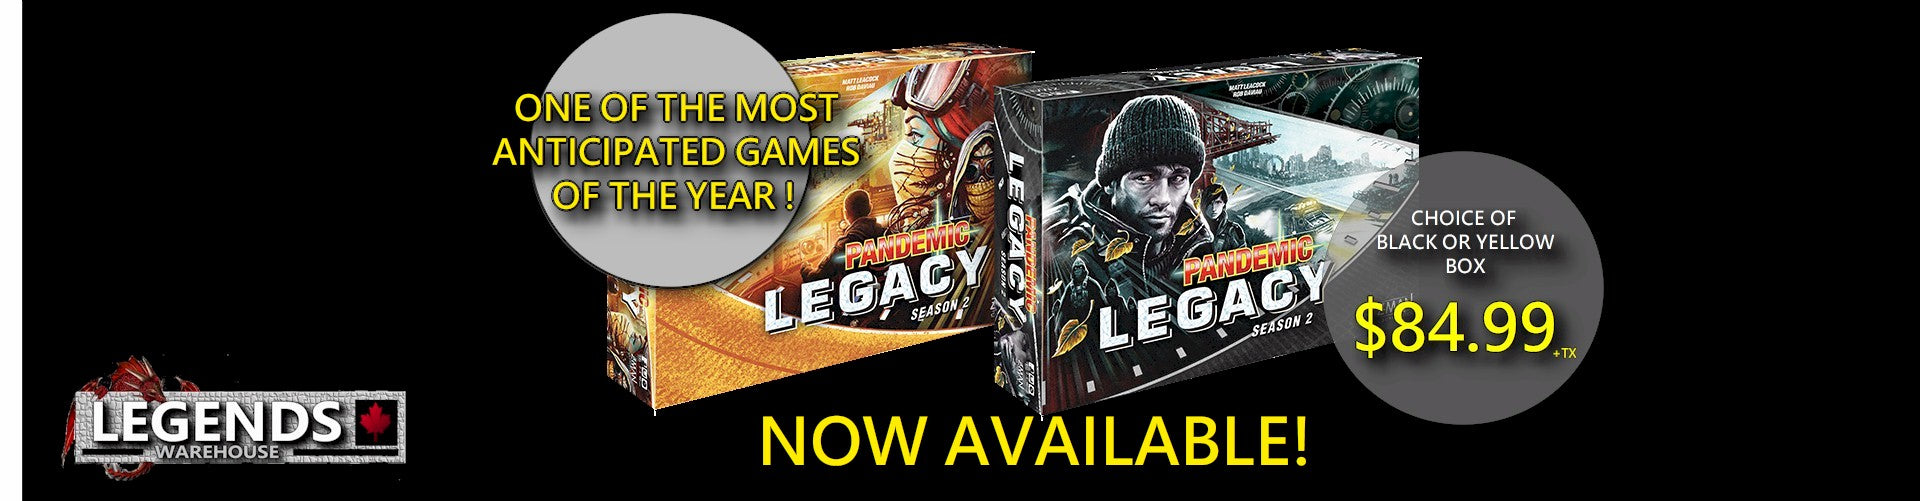 legends warehouse great prices on your games everyday